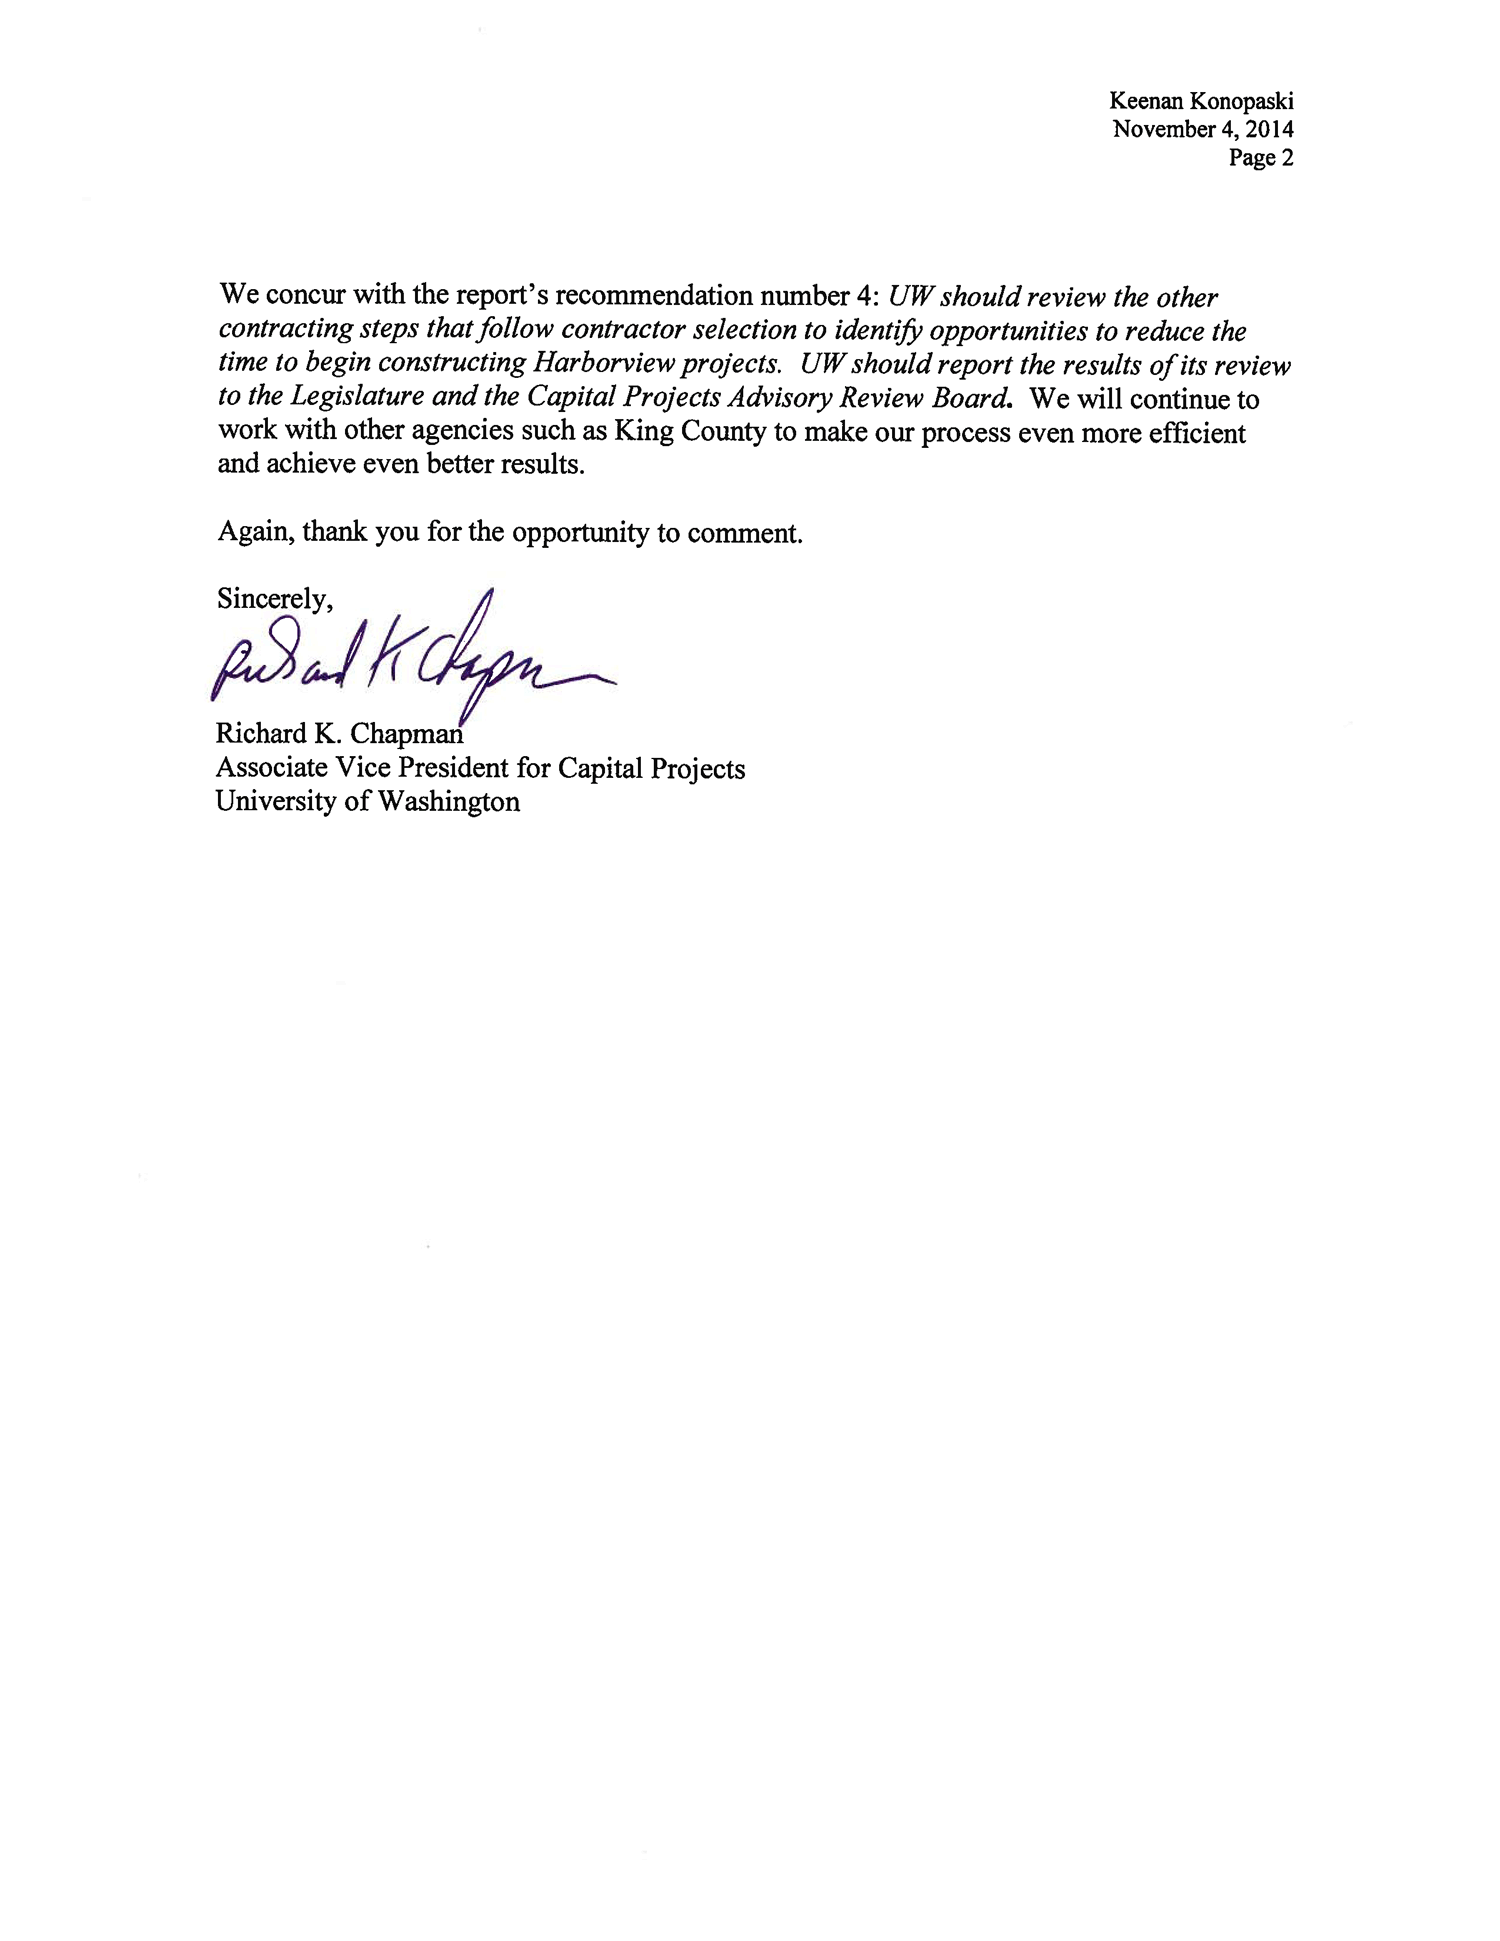 letters of recommendation university of washington